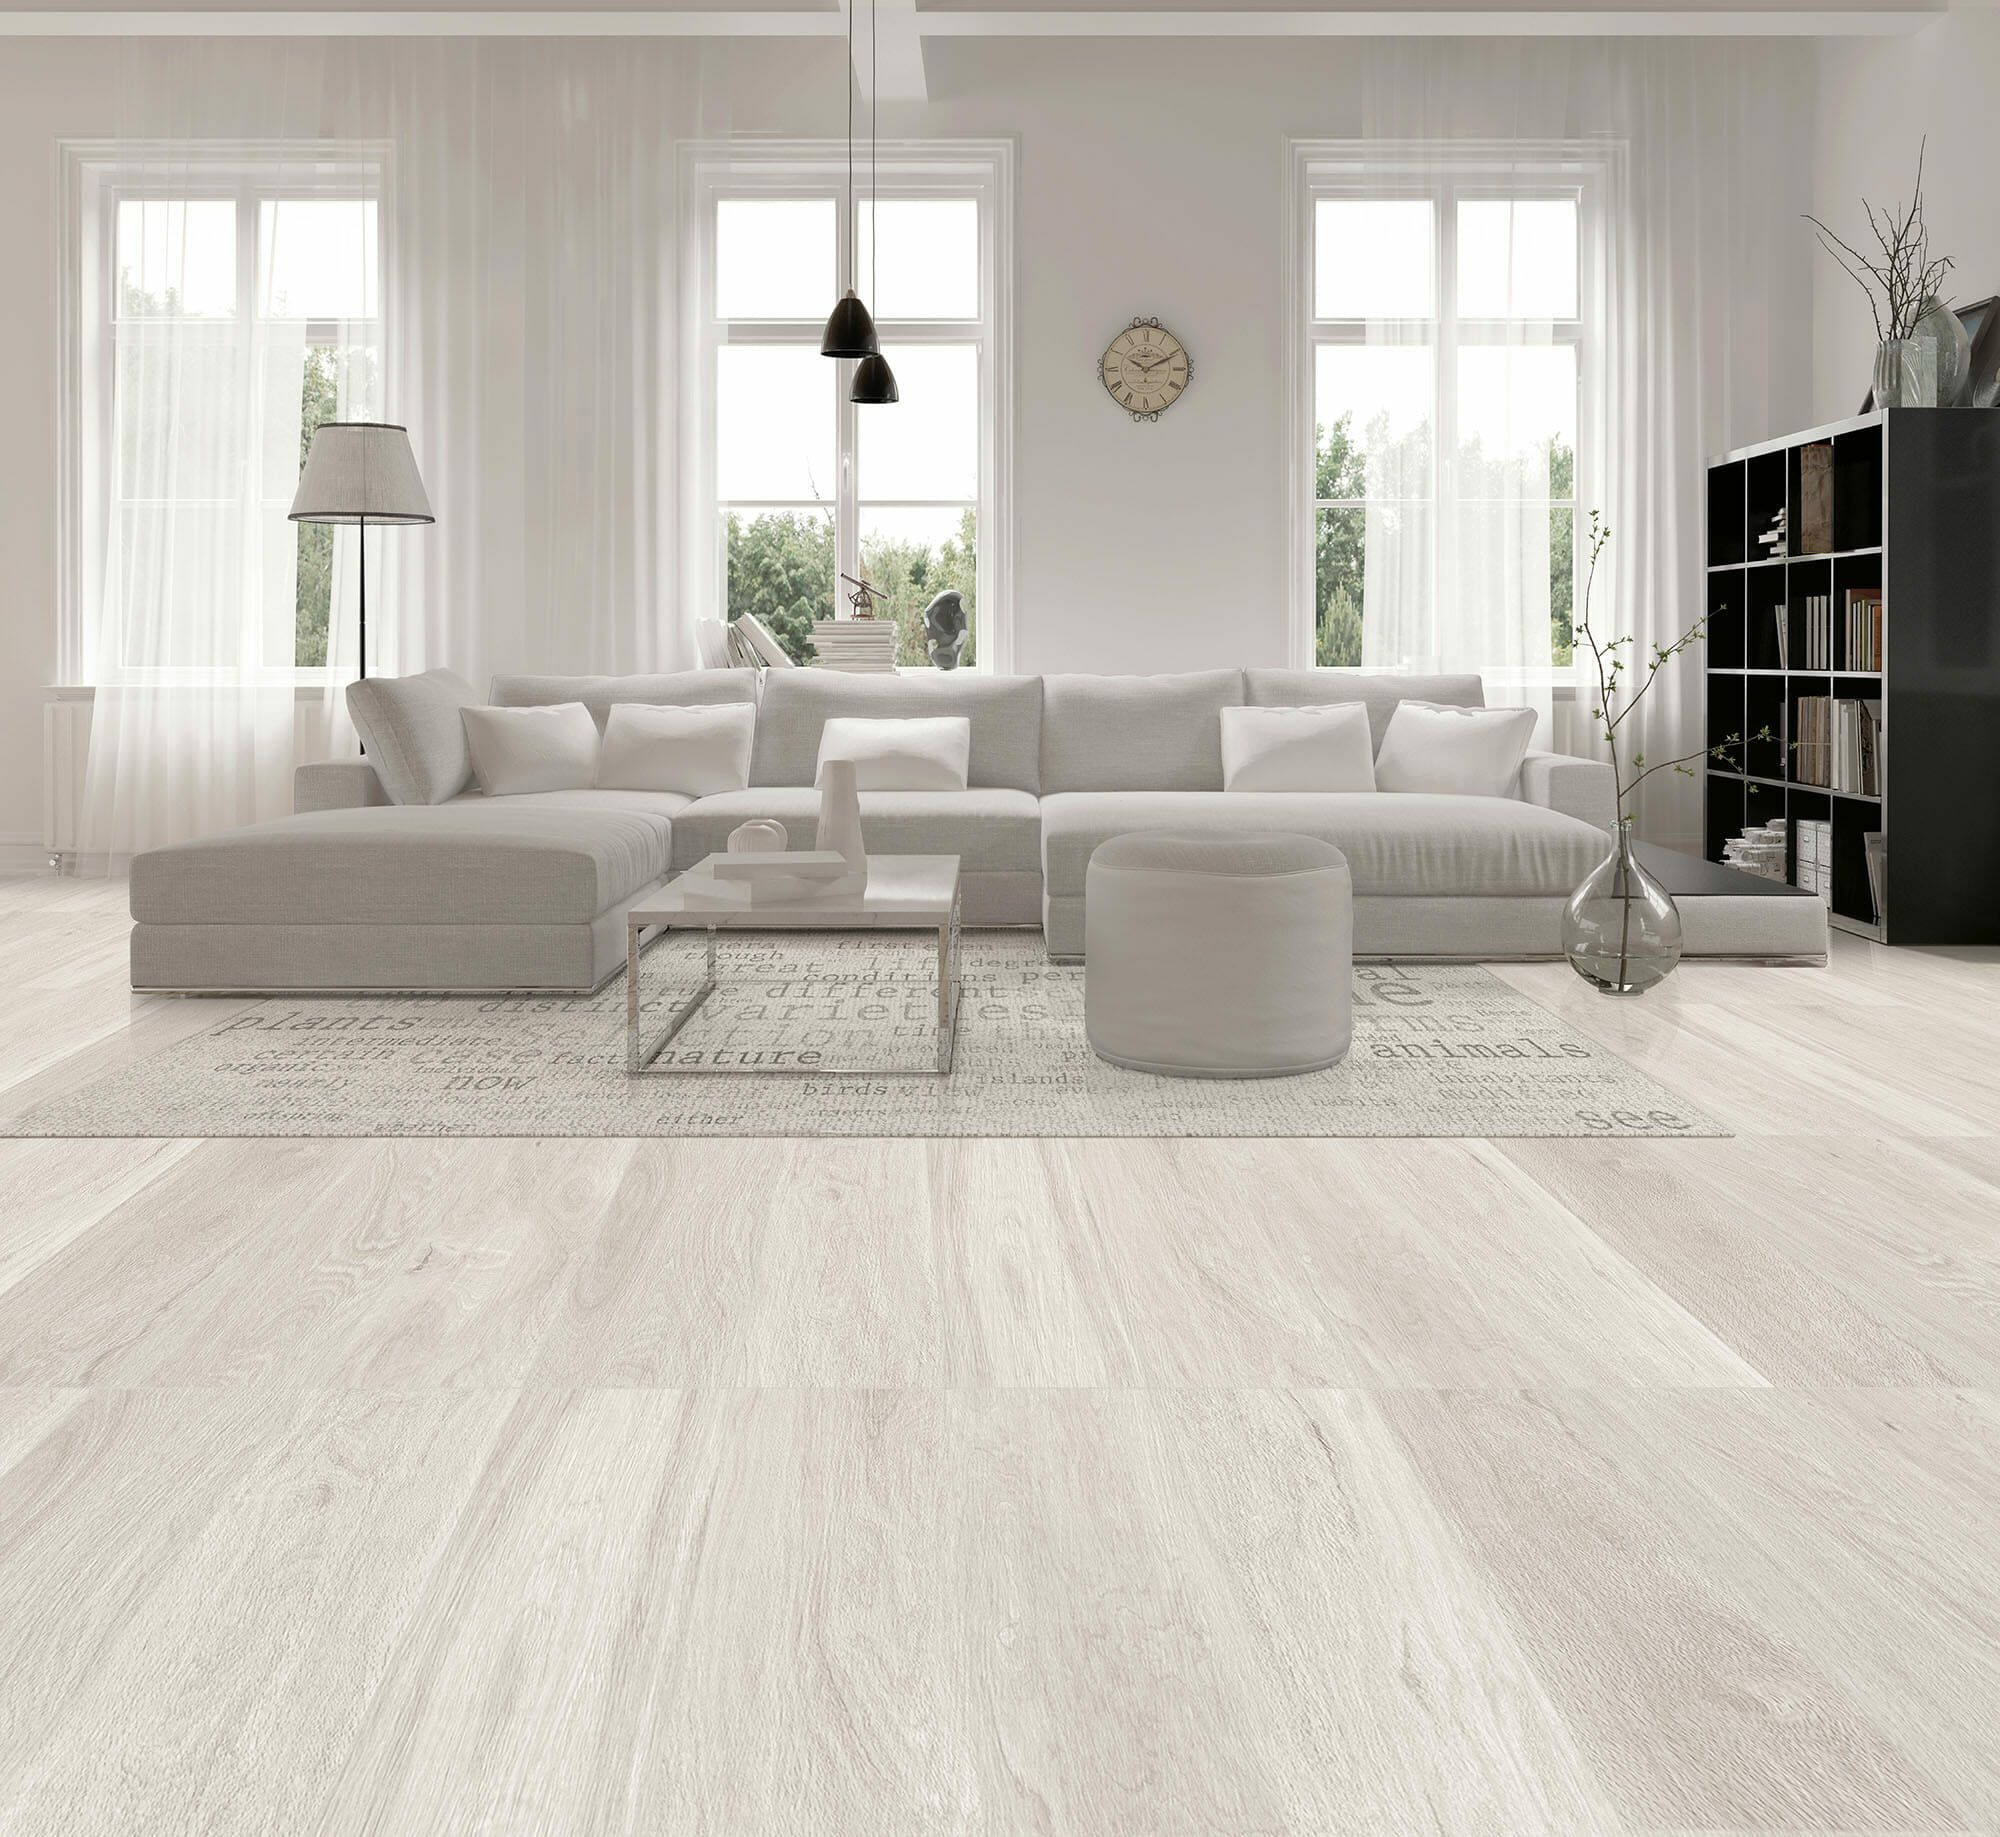 Kenia White Light Wood Look Tile 9x48 Tiles Stone Warehouse Living Room Tiles Tile Floor Living Room Living Room Wood Floor